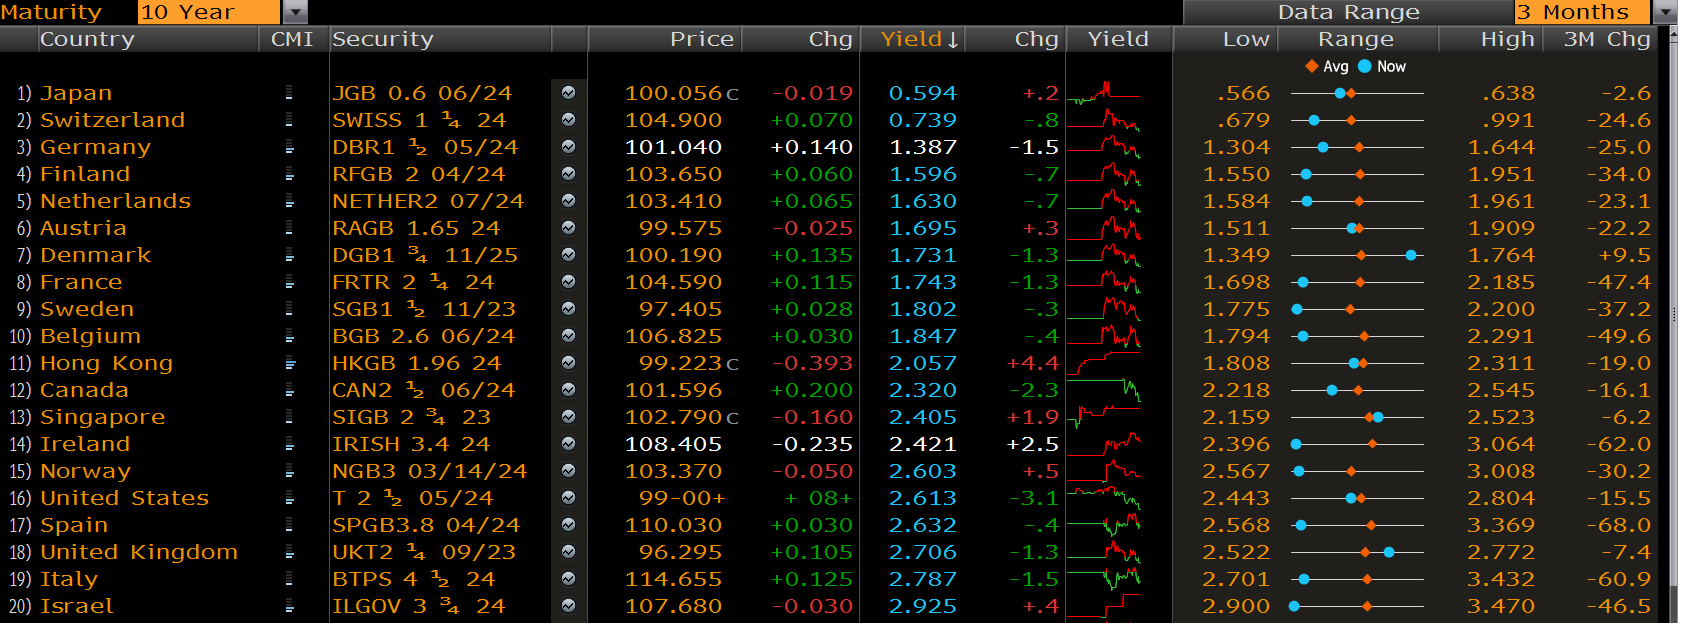 http://www.ritholtz.com/blog/wp-content/uploads/2014/06/10-year-yield-around-the-globe.png